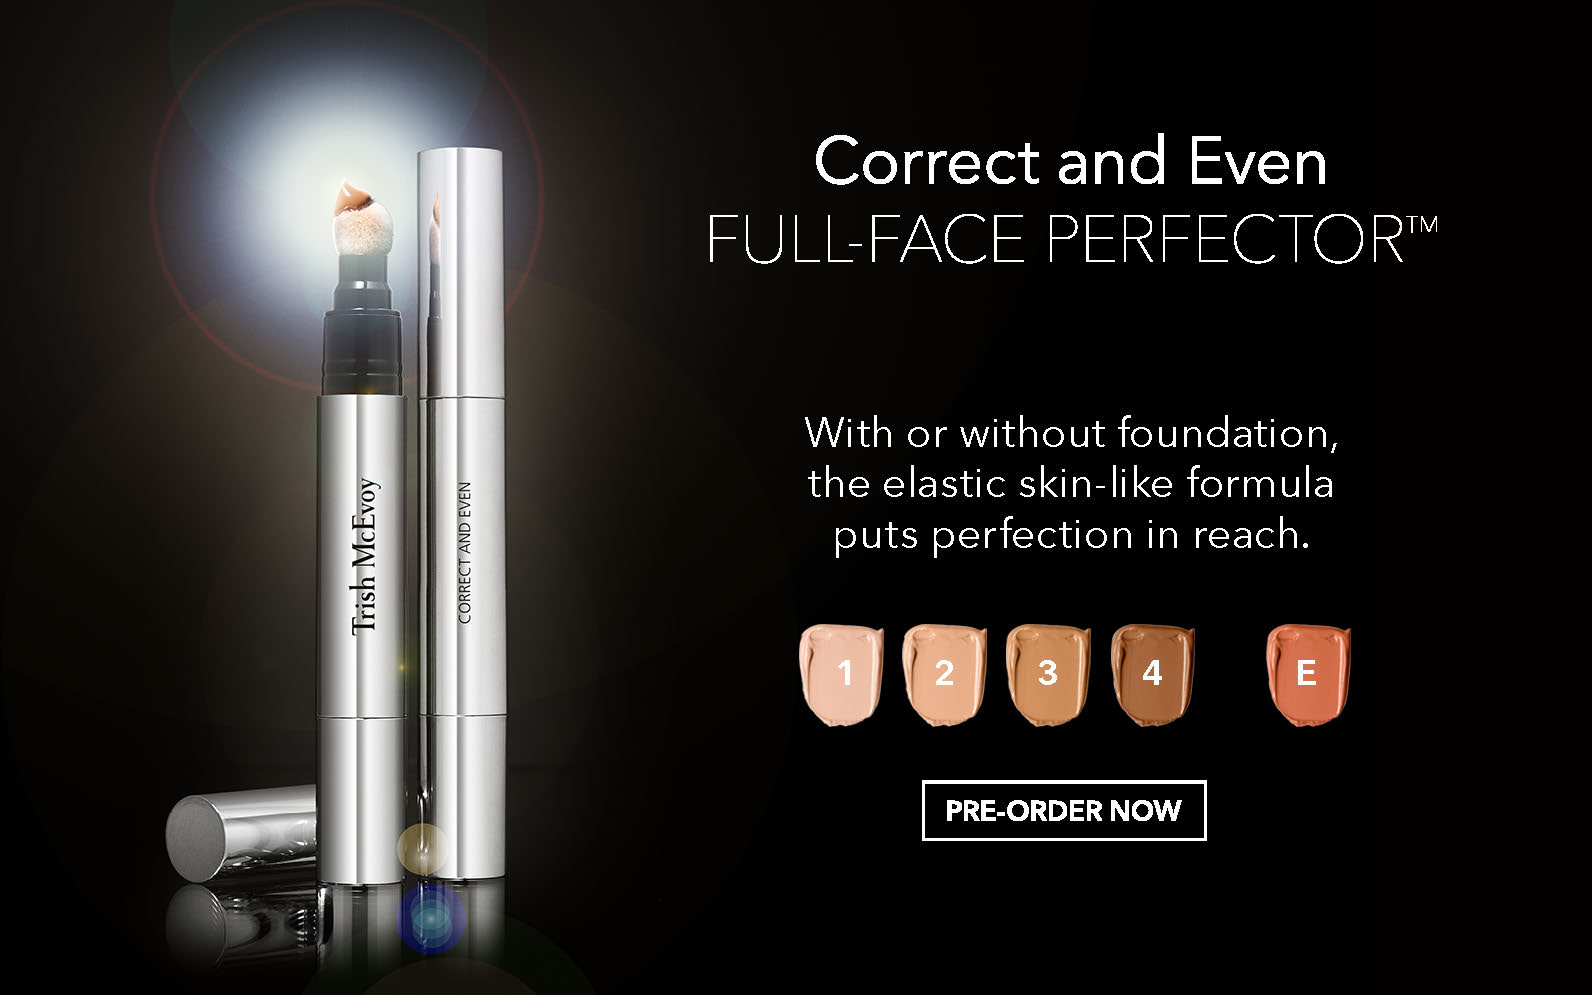 SHOP NOW Correct and Even Full-Face Perfector™